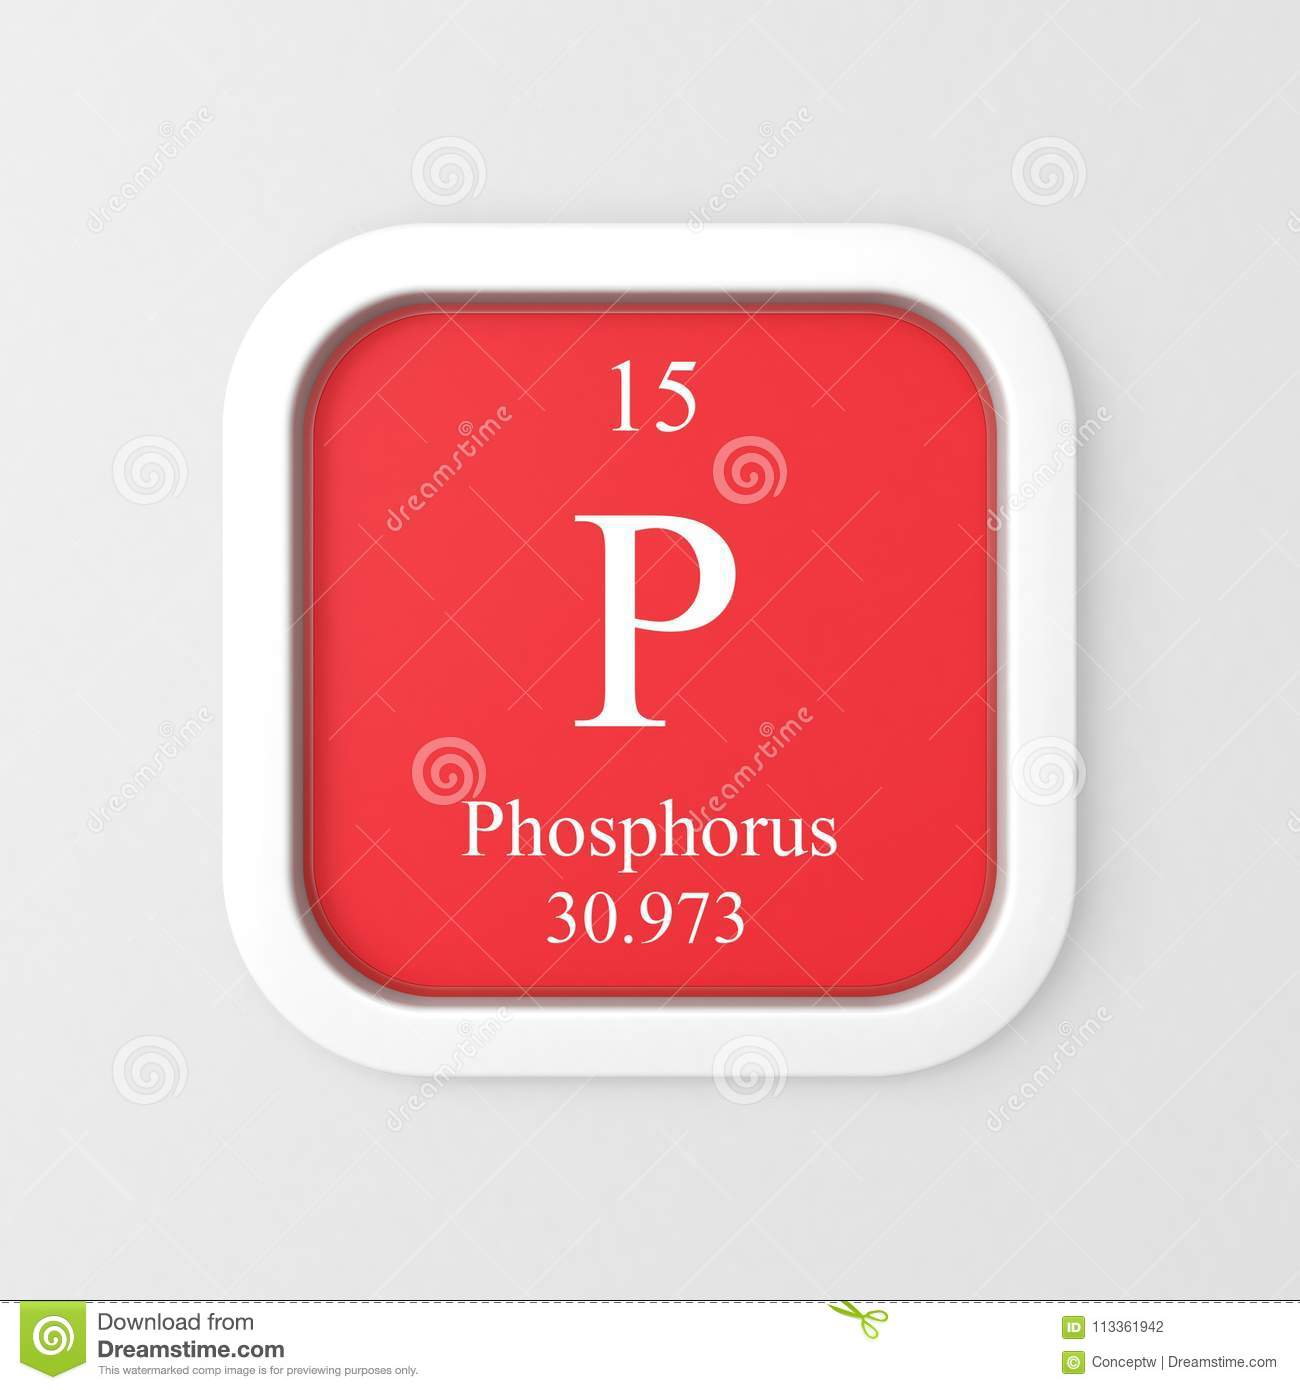 Phosphorus symbol from periodic table stock illustration download phosphorus symbol from periodic table stock illustration illustration of icon phosphorus 113361942 urtaz Images